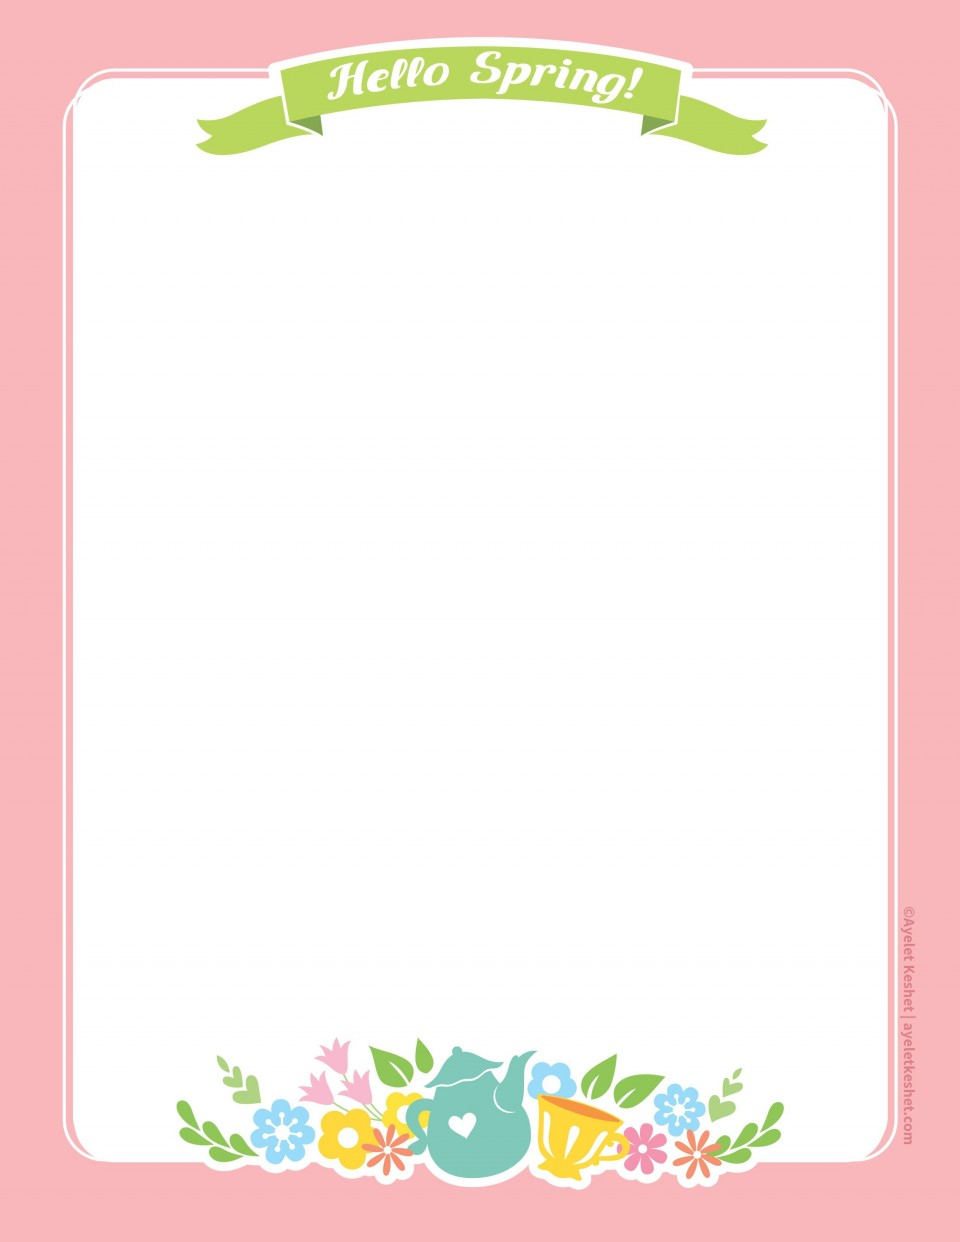 010 Imposing Free Printable Stationery Paper Template Example 960